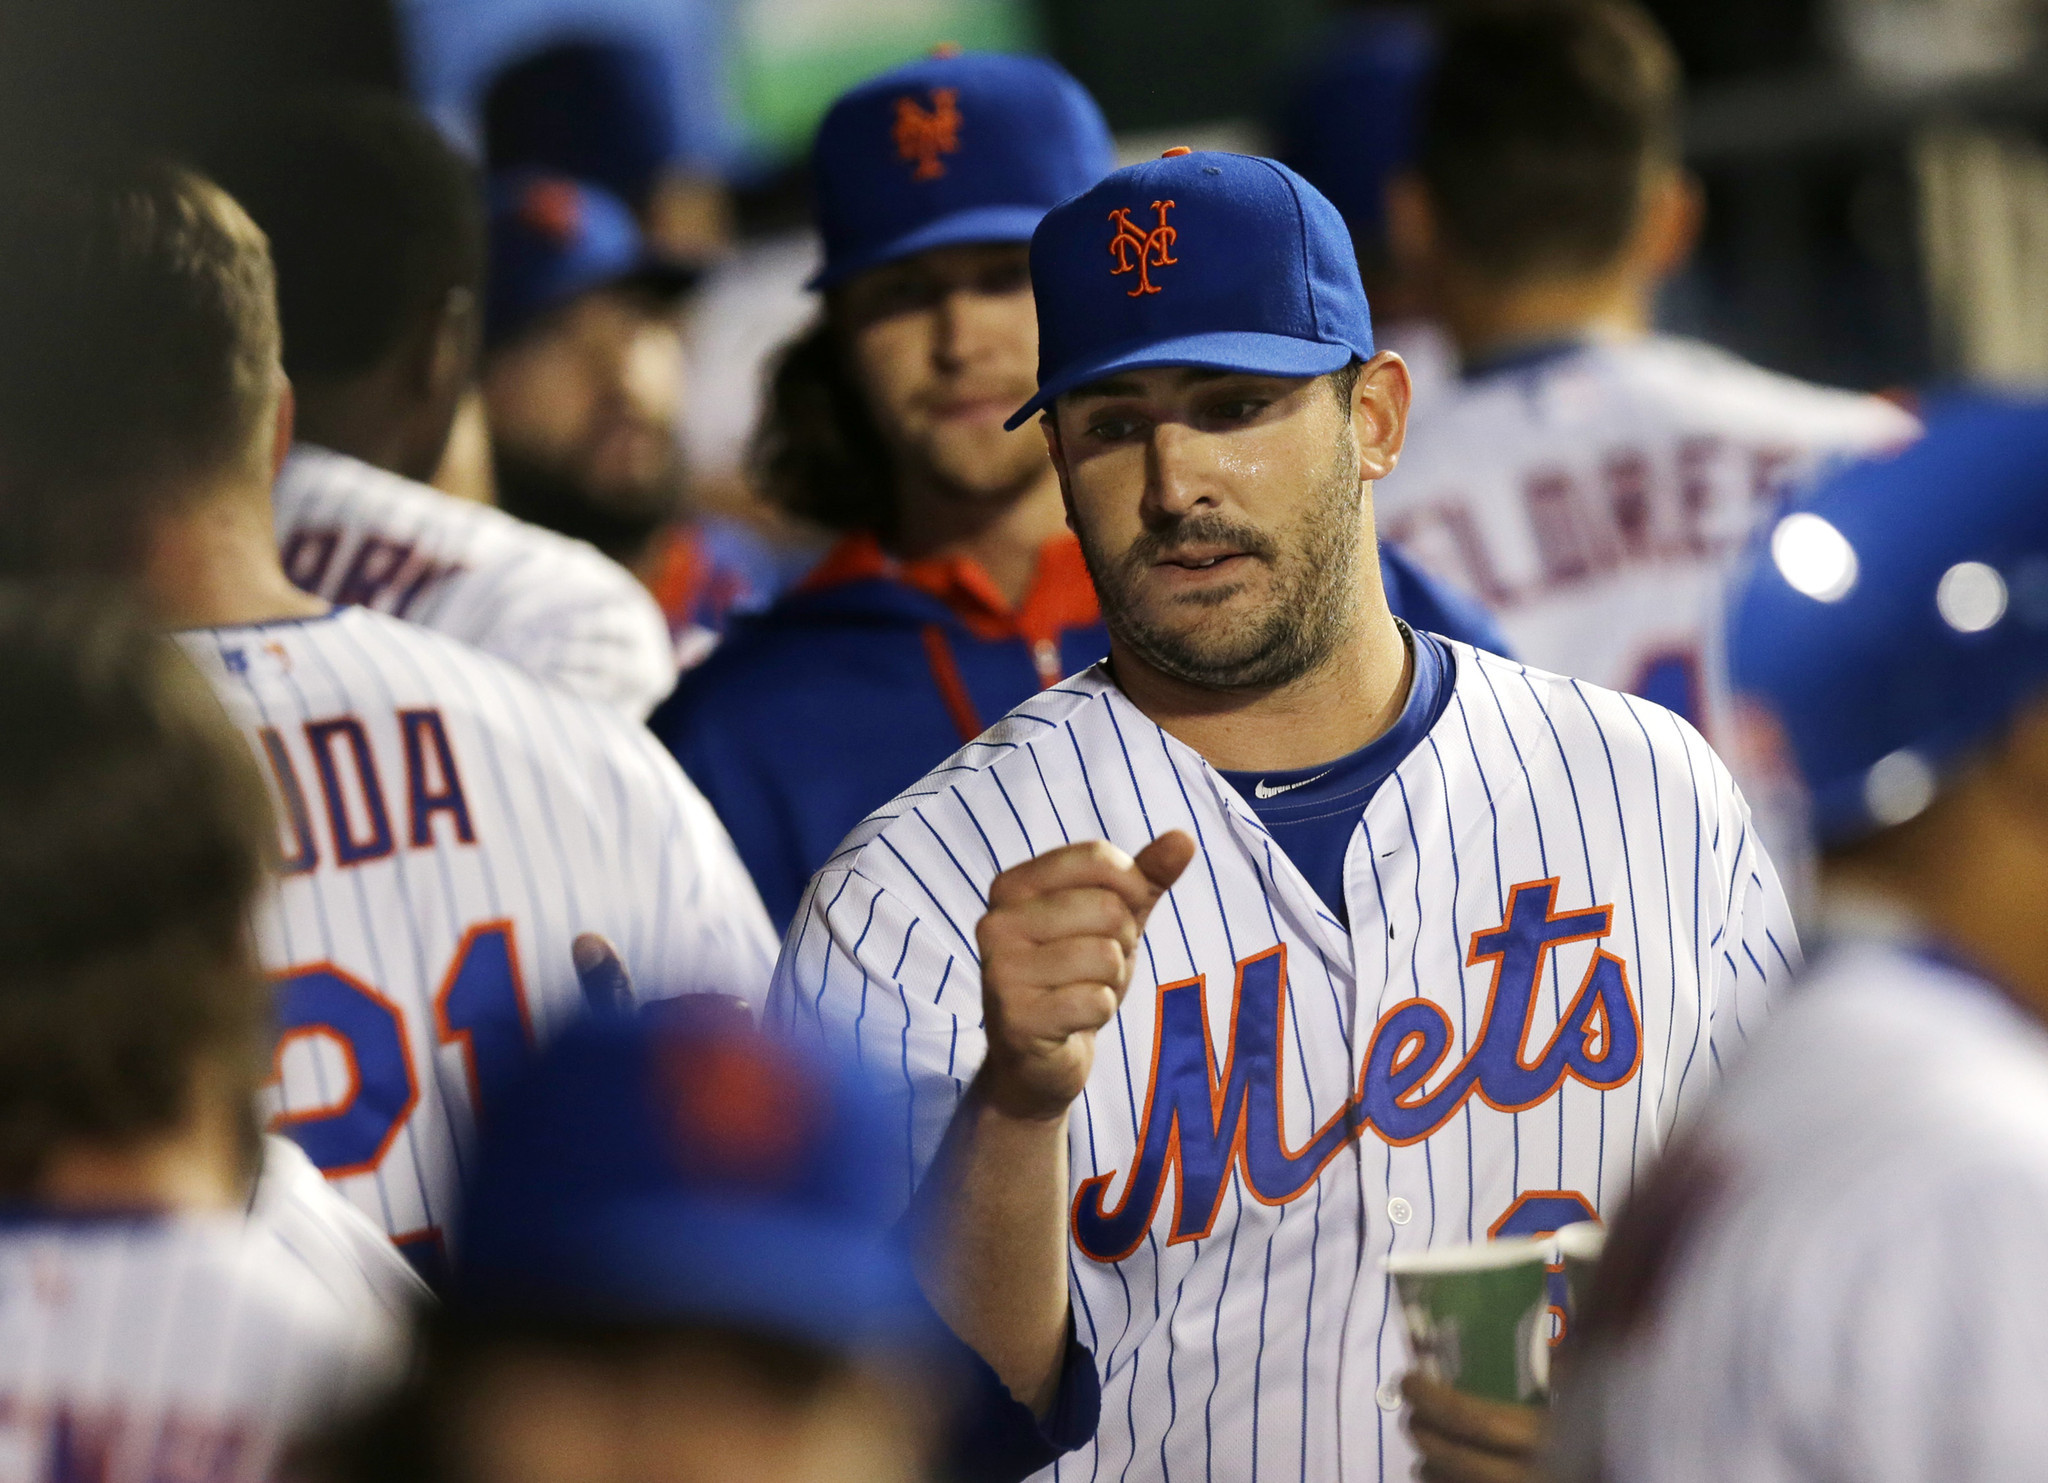 Red Sox, Yankees, Mets: What We Know So Far - LA Times